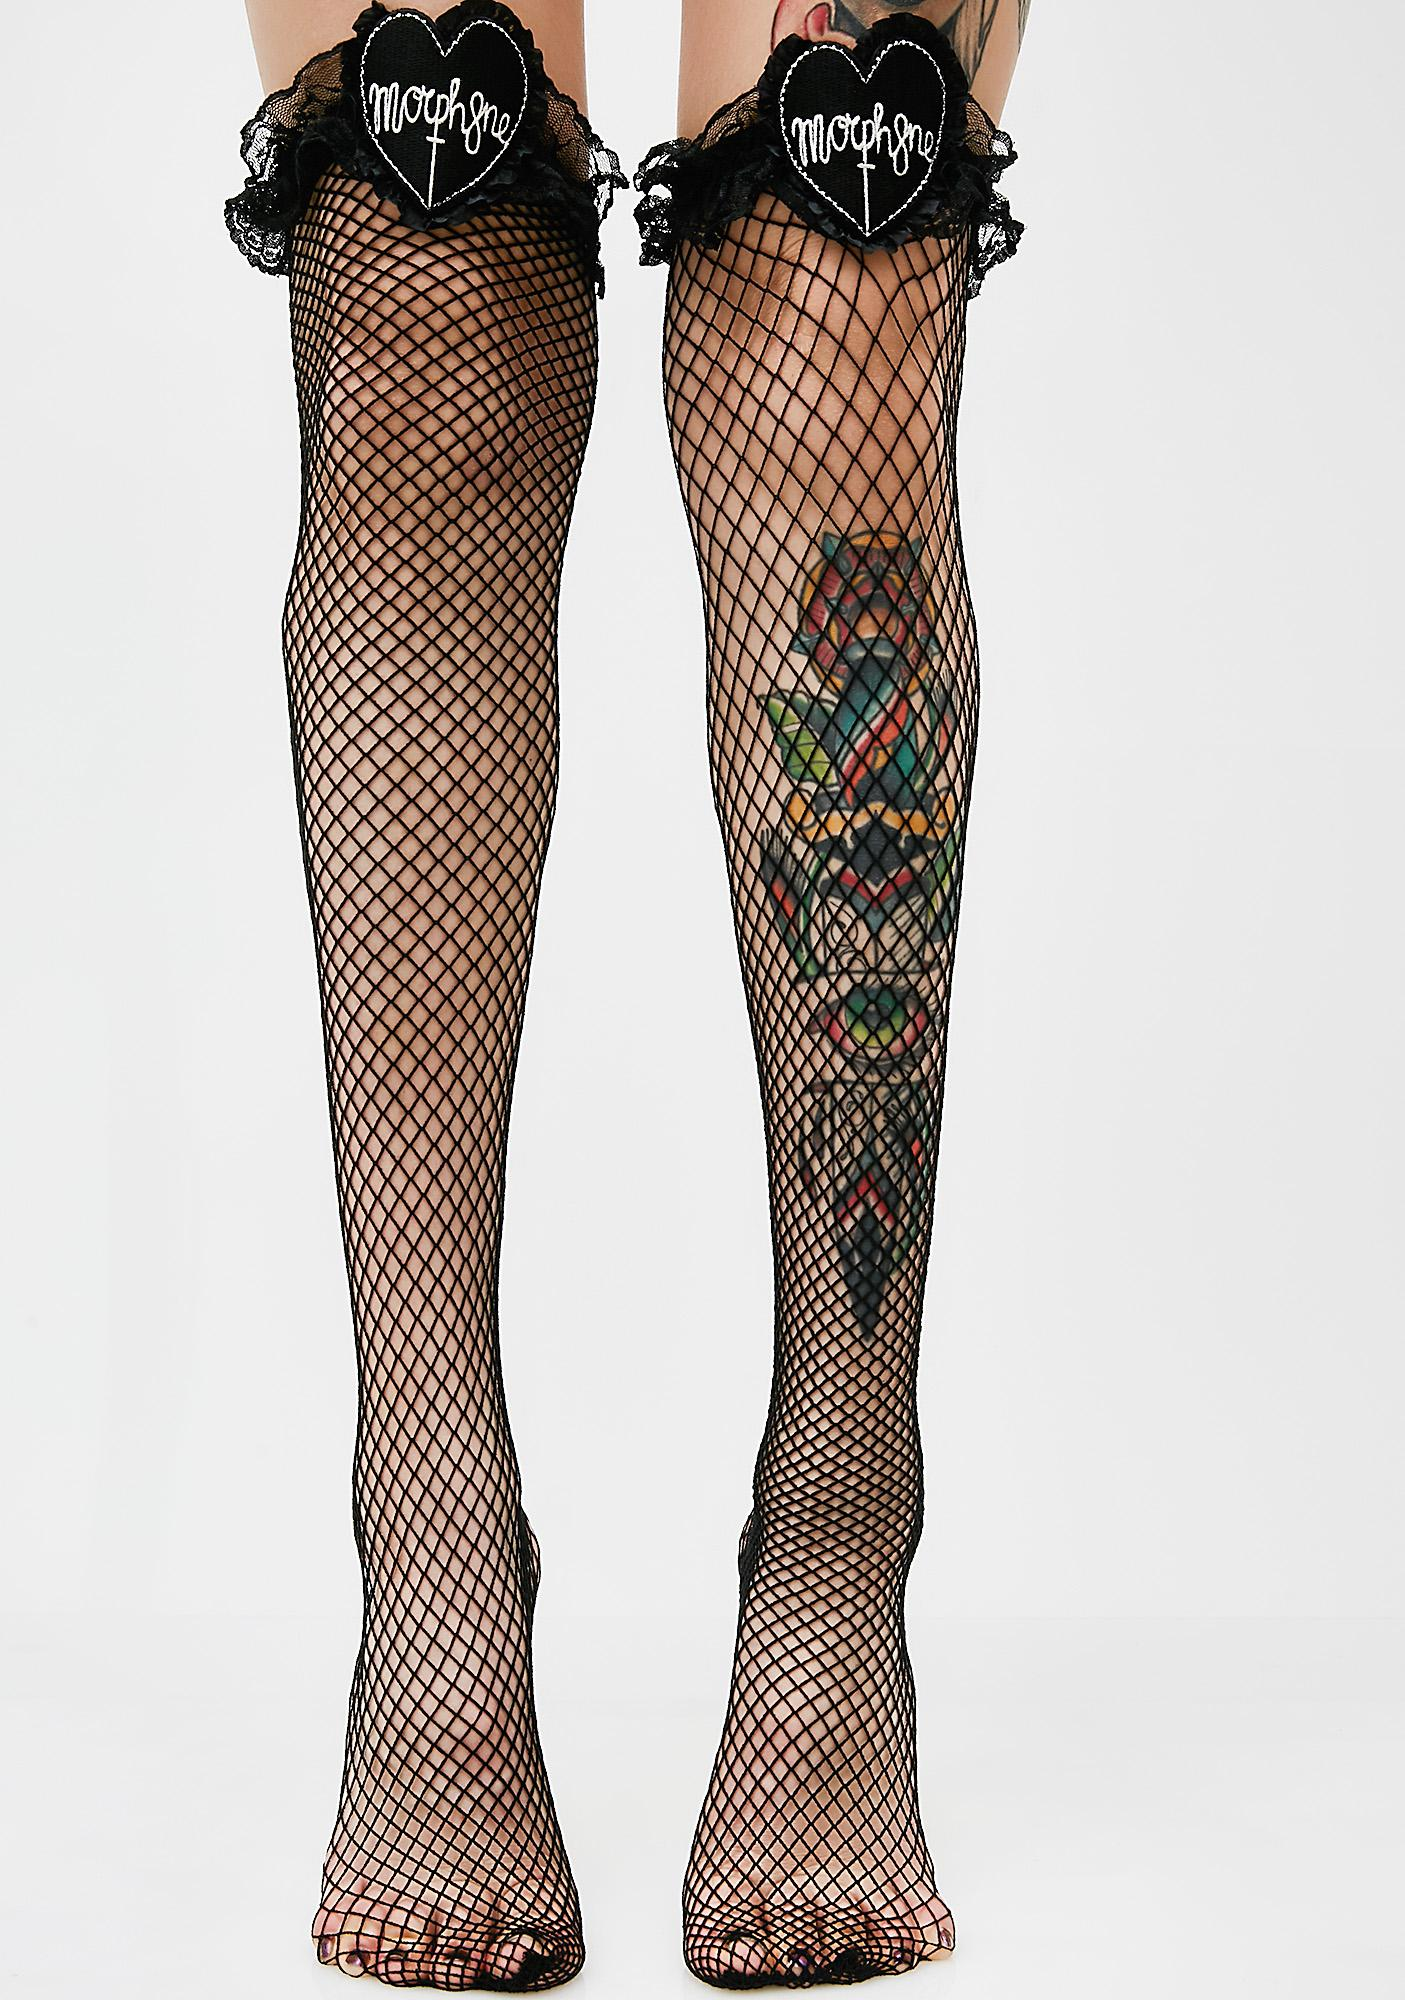 613330dde6a9f Morph8ne Lace Top Fishnet Thigh Highs | Dolls Kill